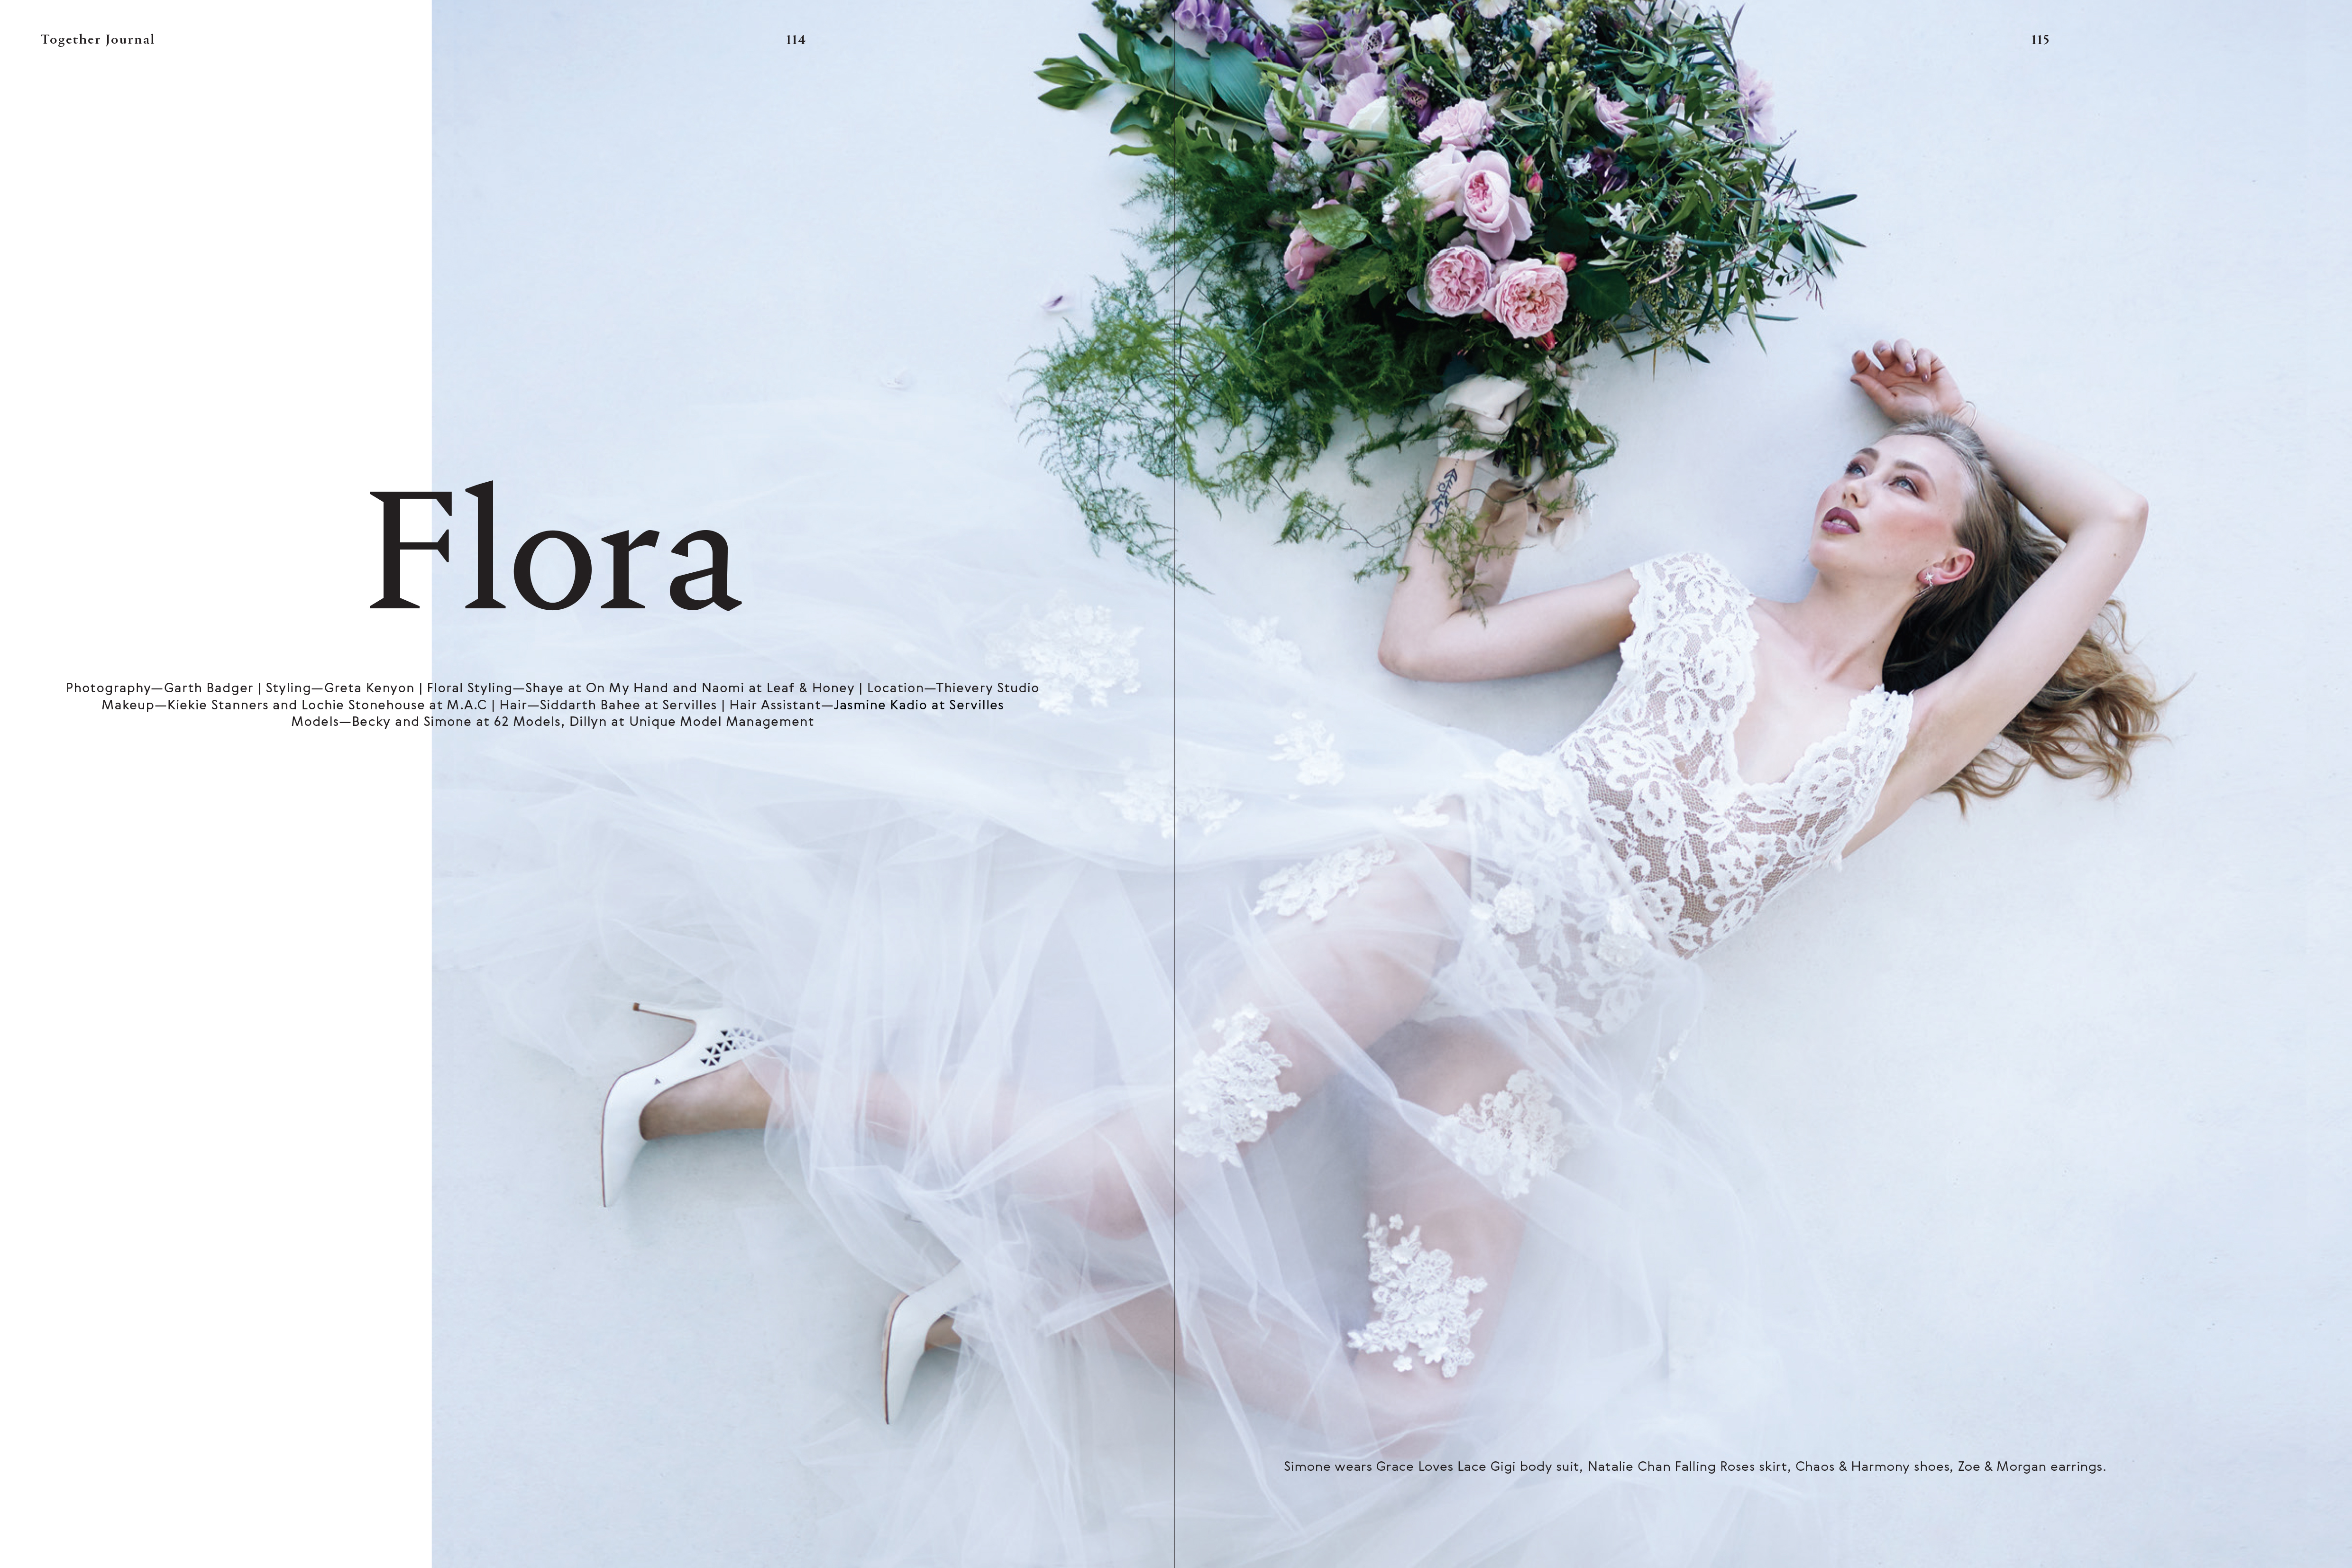 Categories: Fashion-Flora Fashion Issue 6